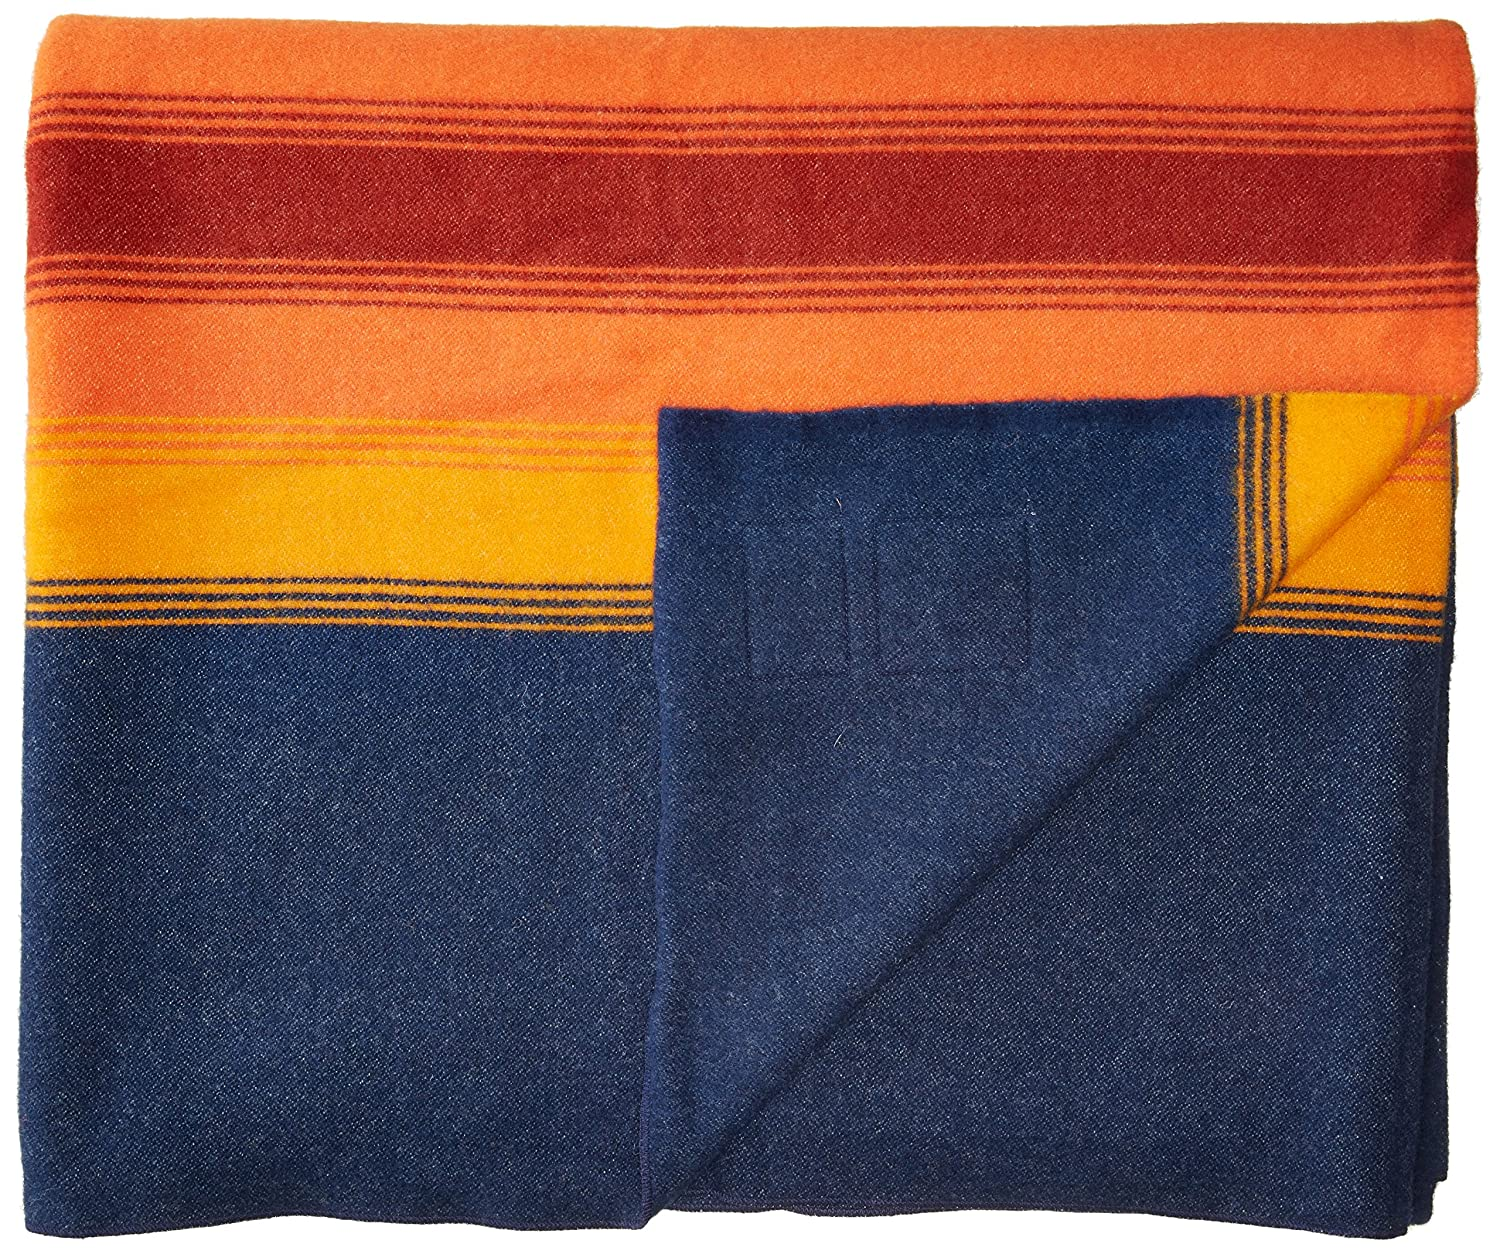 Pendleton Grand Canyon National Park Full Blanket ZA13250750